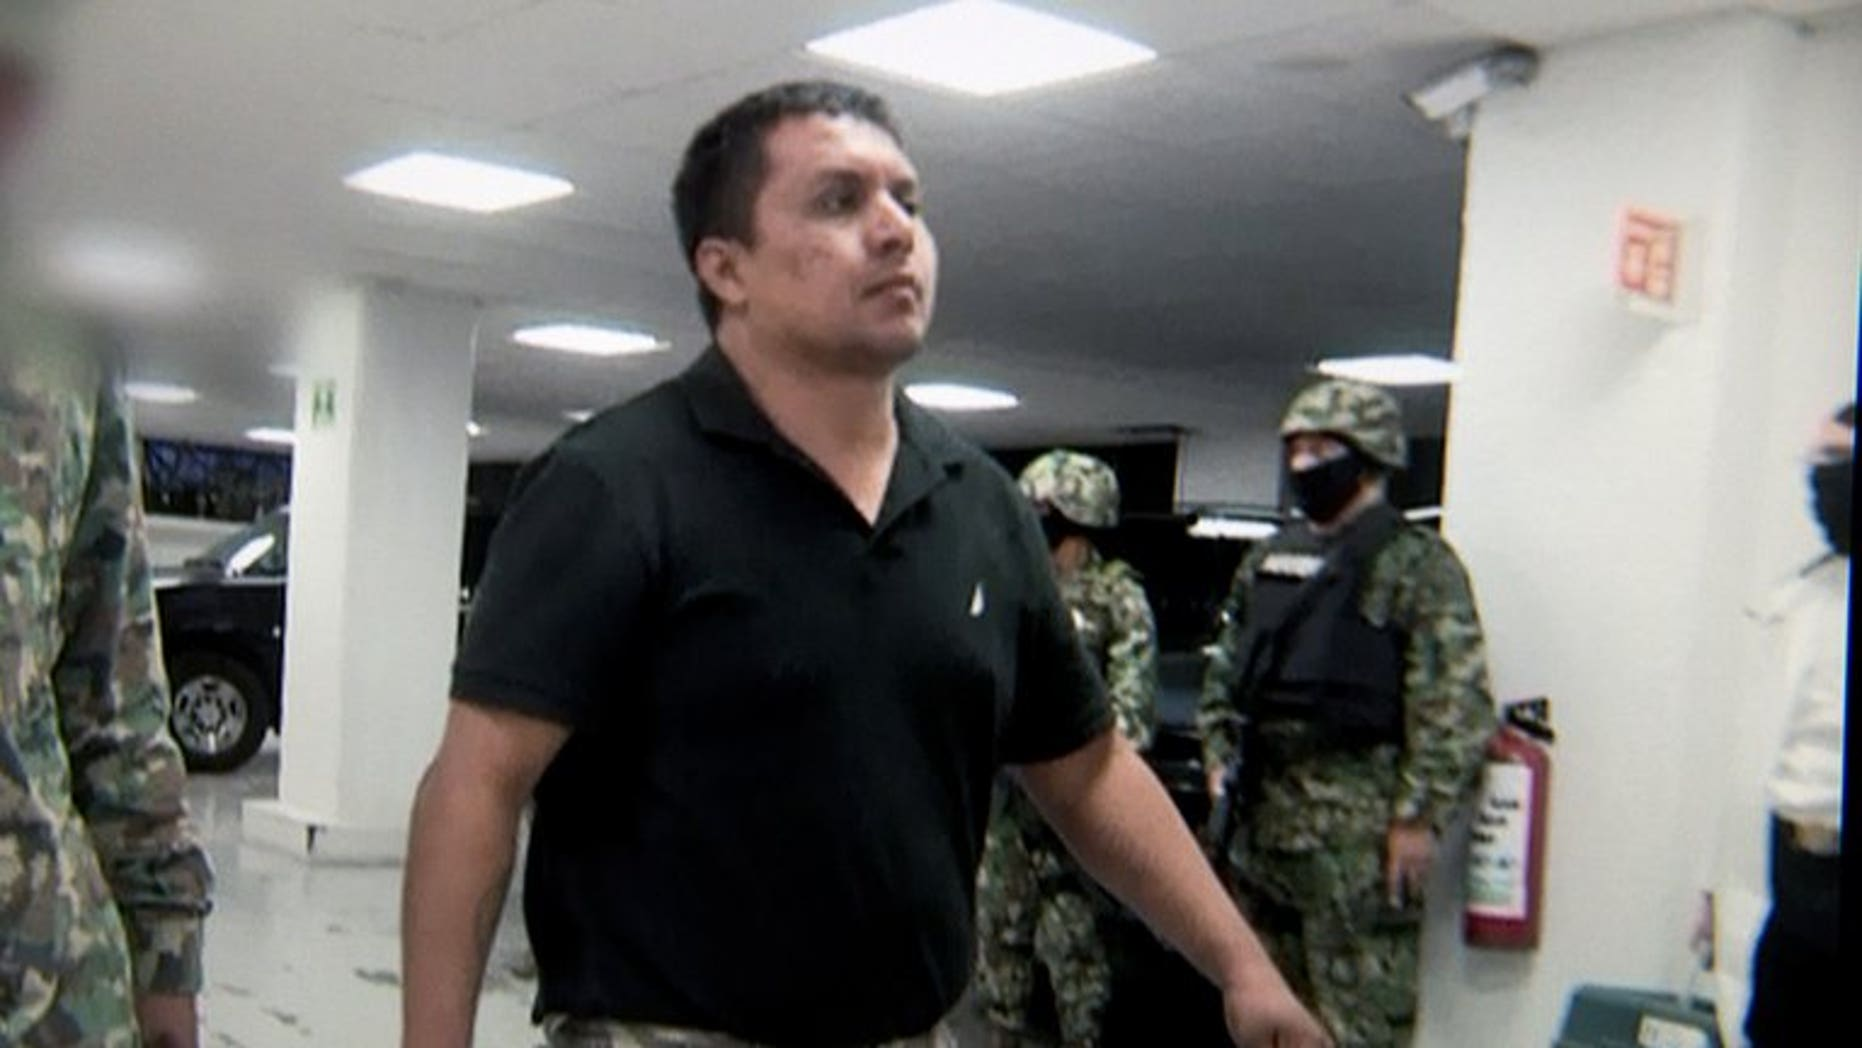 Picture taken from a video released by the Mexican Navy showing the captured head of the Zetas drug cartel Miguel Angel Trevino in Mexico City on July 16, 2013. Trevino has filed for legal protection over claims that he is at risk of torture or isolation during his detention, court officials said.